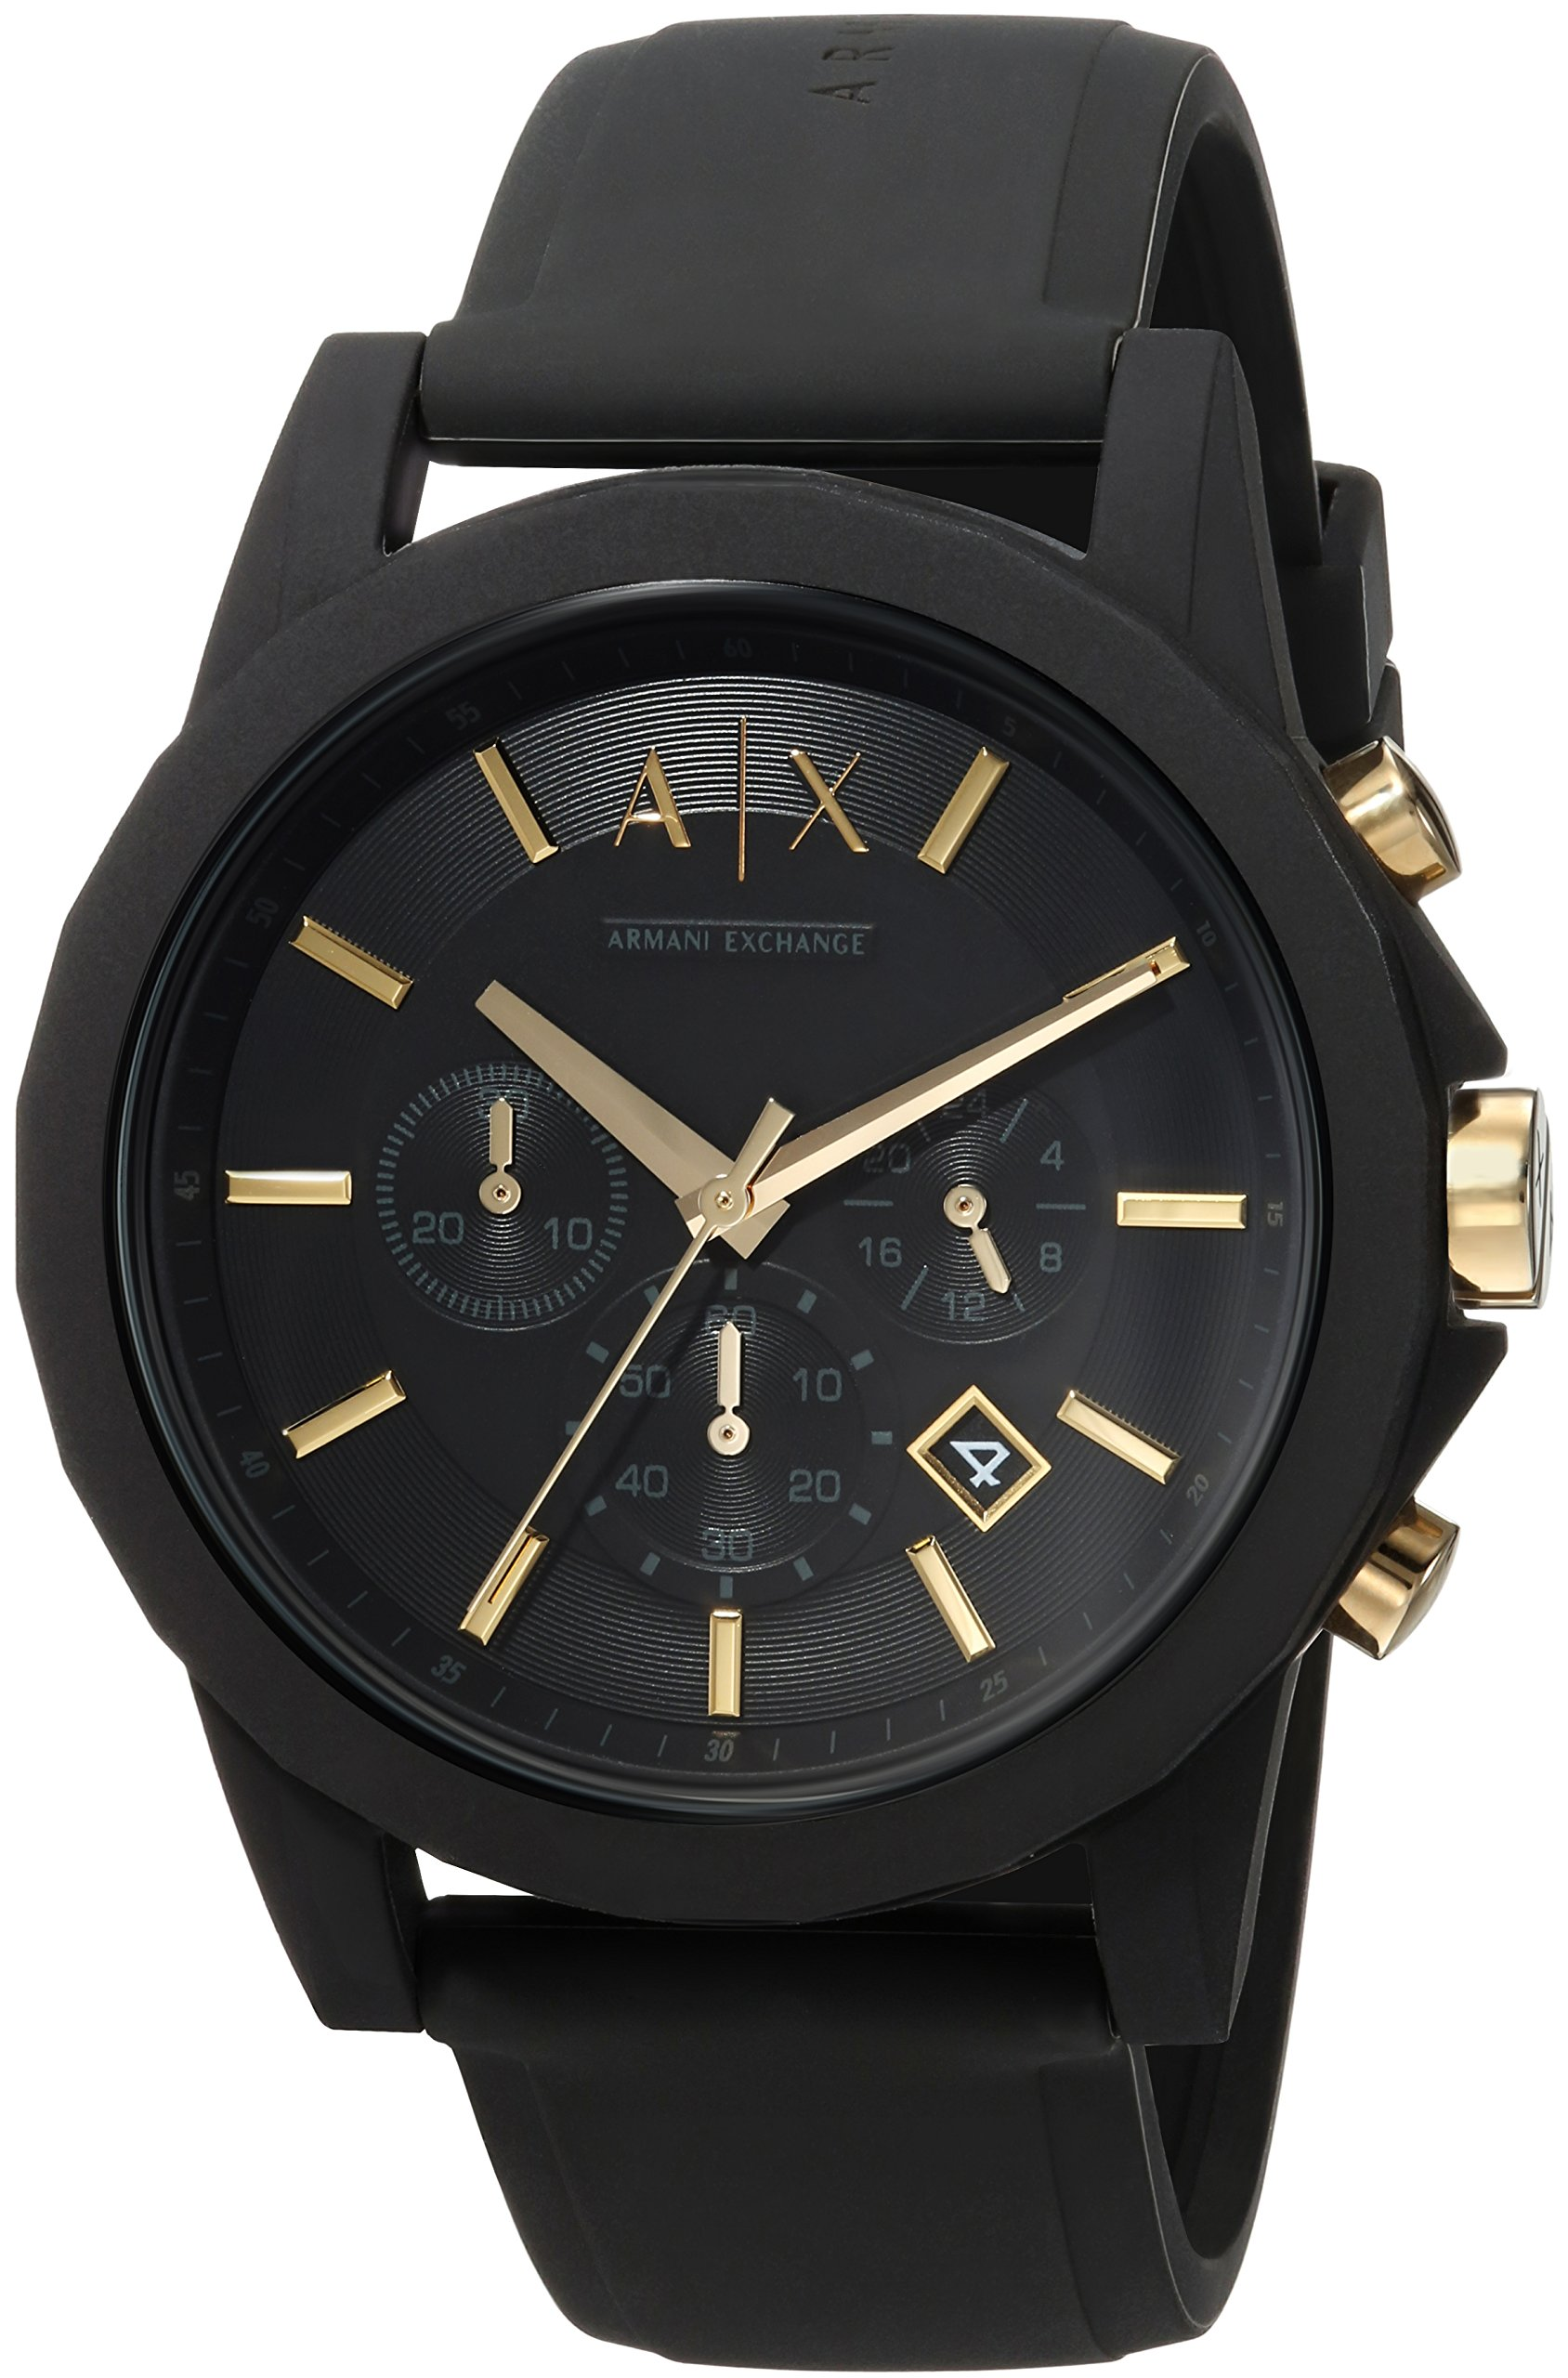 Armani Exchange Men's  Black Silicone Watch and Luggage Tag Gift Set AX7105 by A|X Armani Exchange